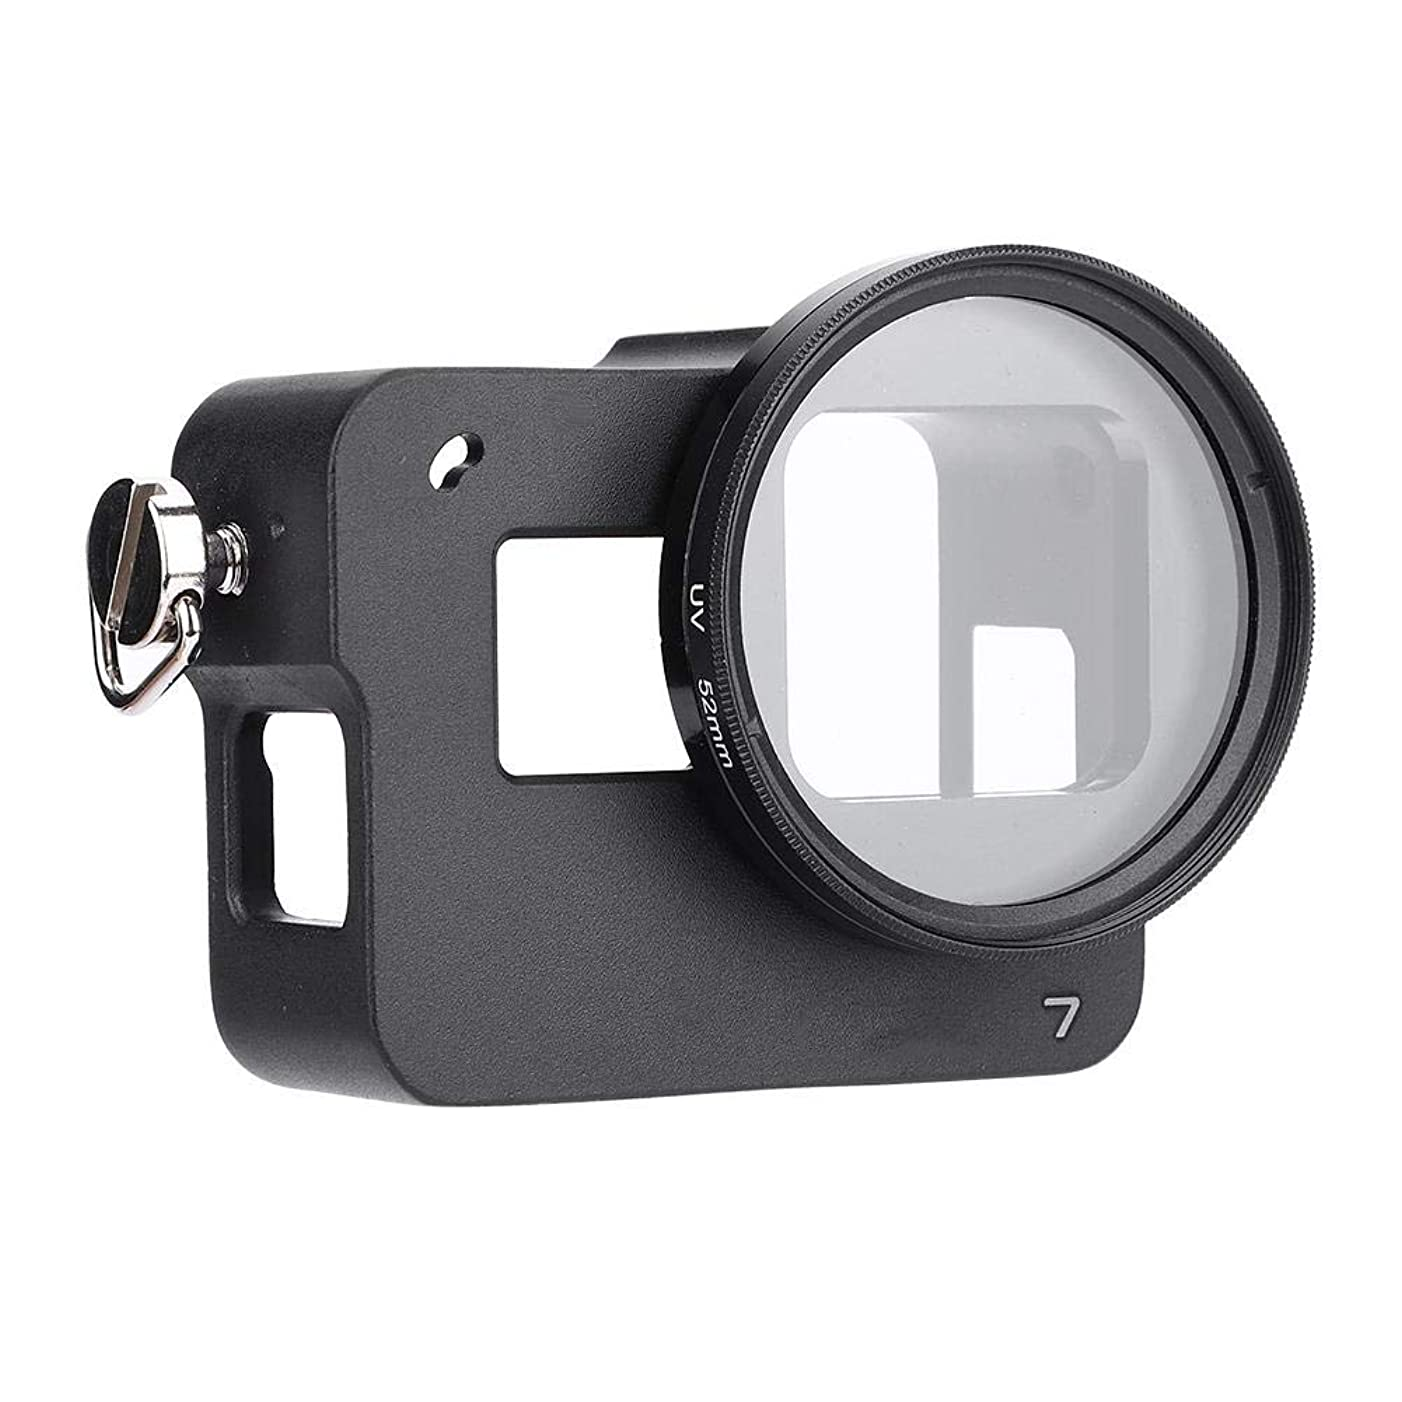 Serounder Aluminum Alloy Housing Cage Frame Case Lens Frame Protective Shell for GoPro Hero 7 Camera(Without Back Cover)